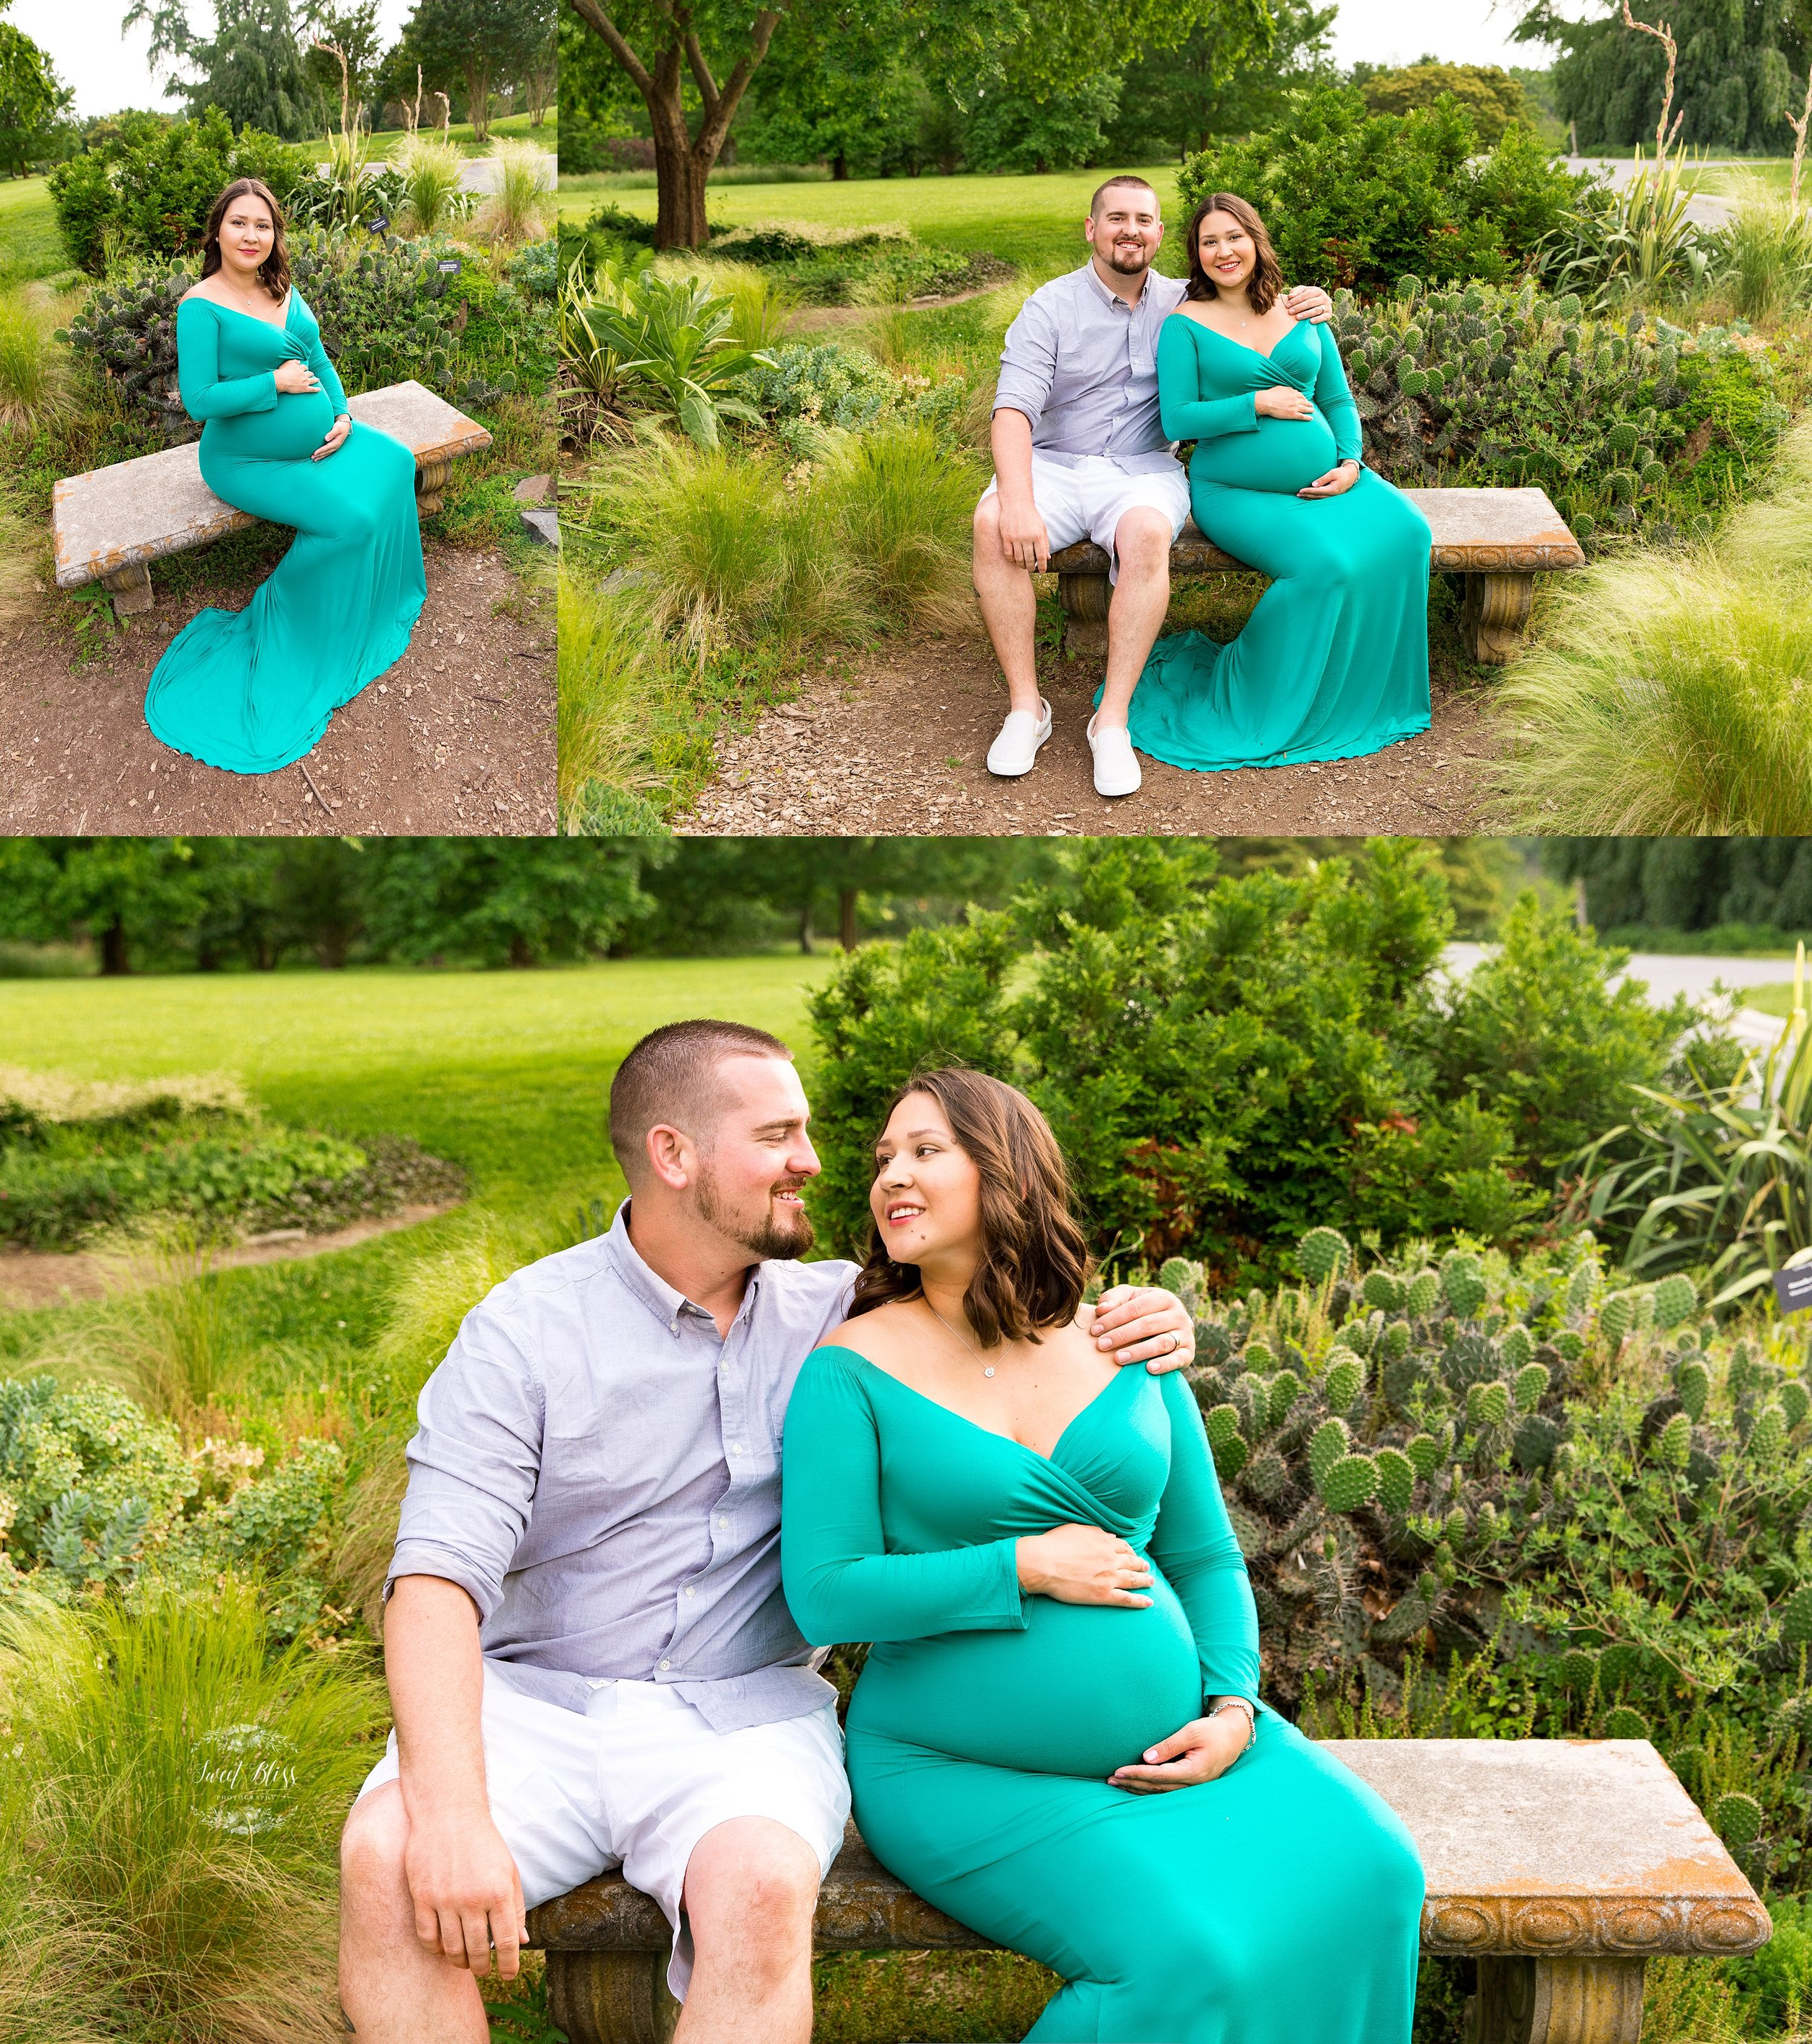 maternitysession_maternityphotographermaryland-22.jpg